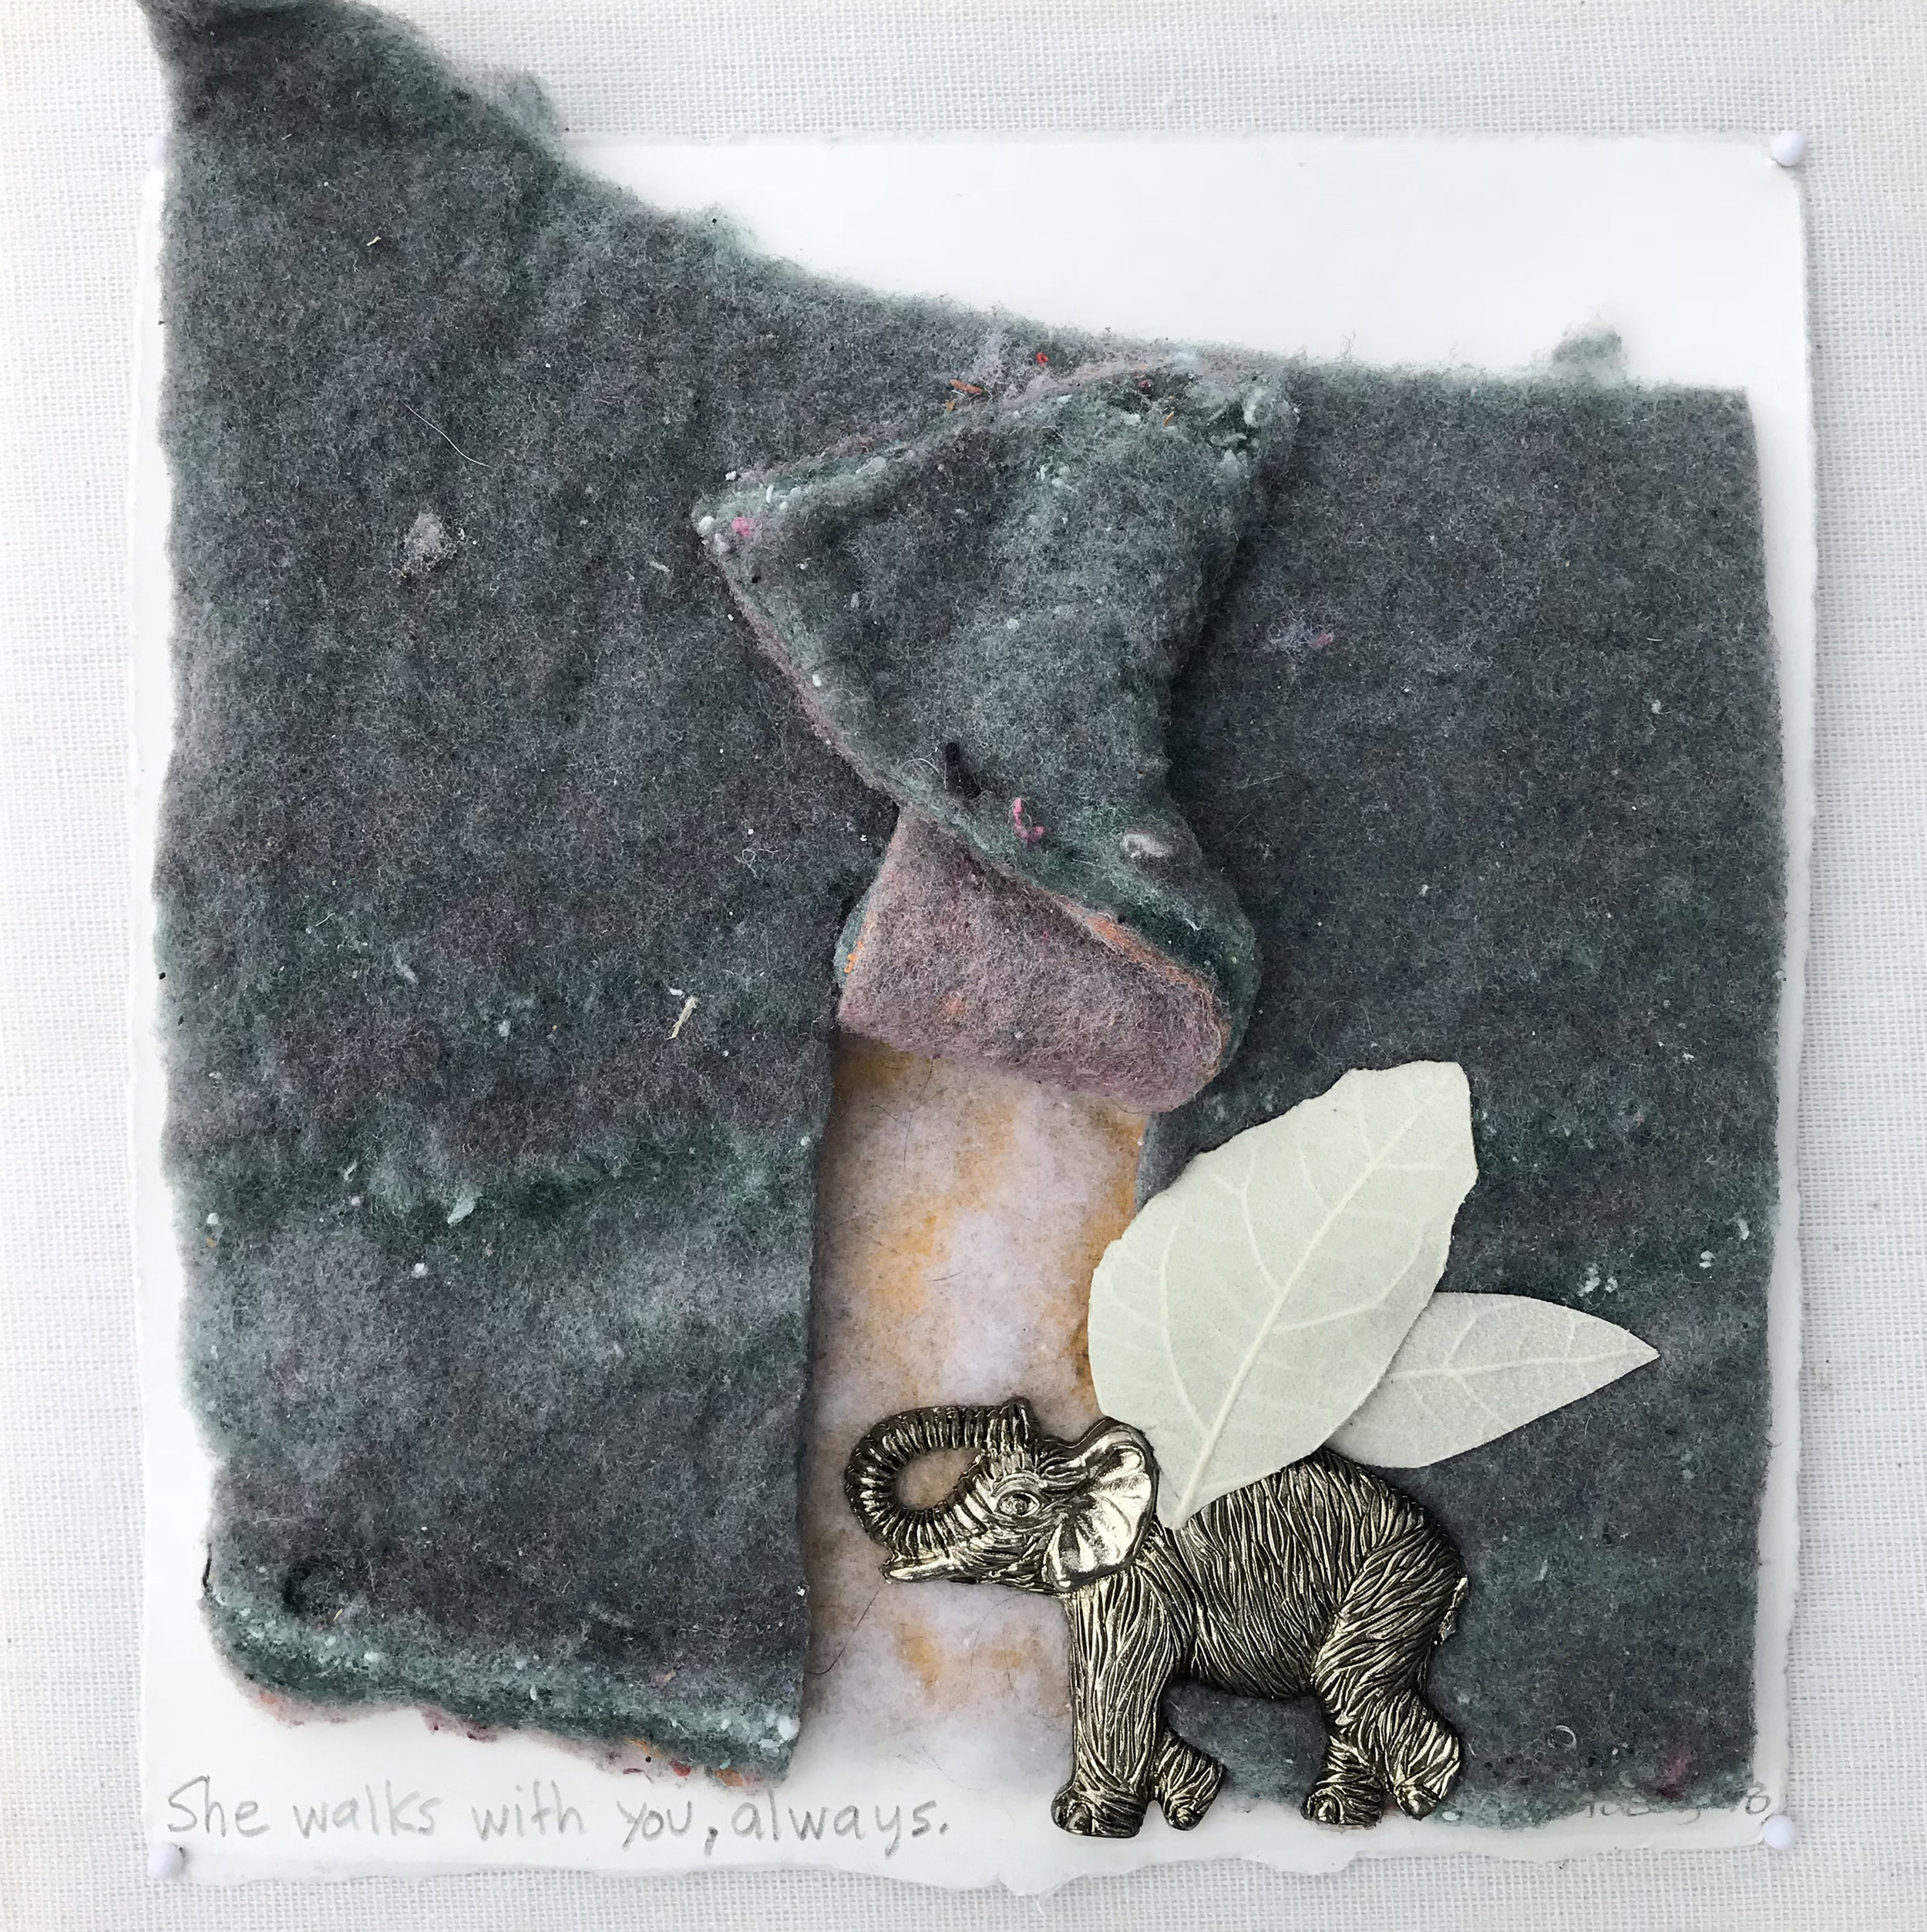 She walks with you, always. - 2018  laundry lint, white poplar leaves, metallic elephant on cotton rag paper